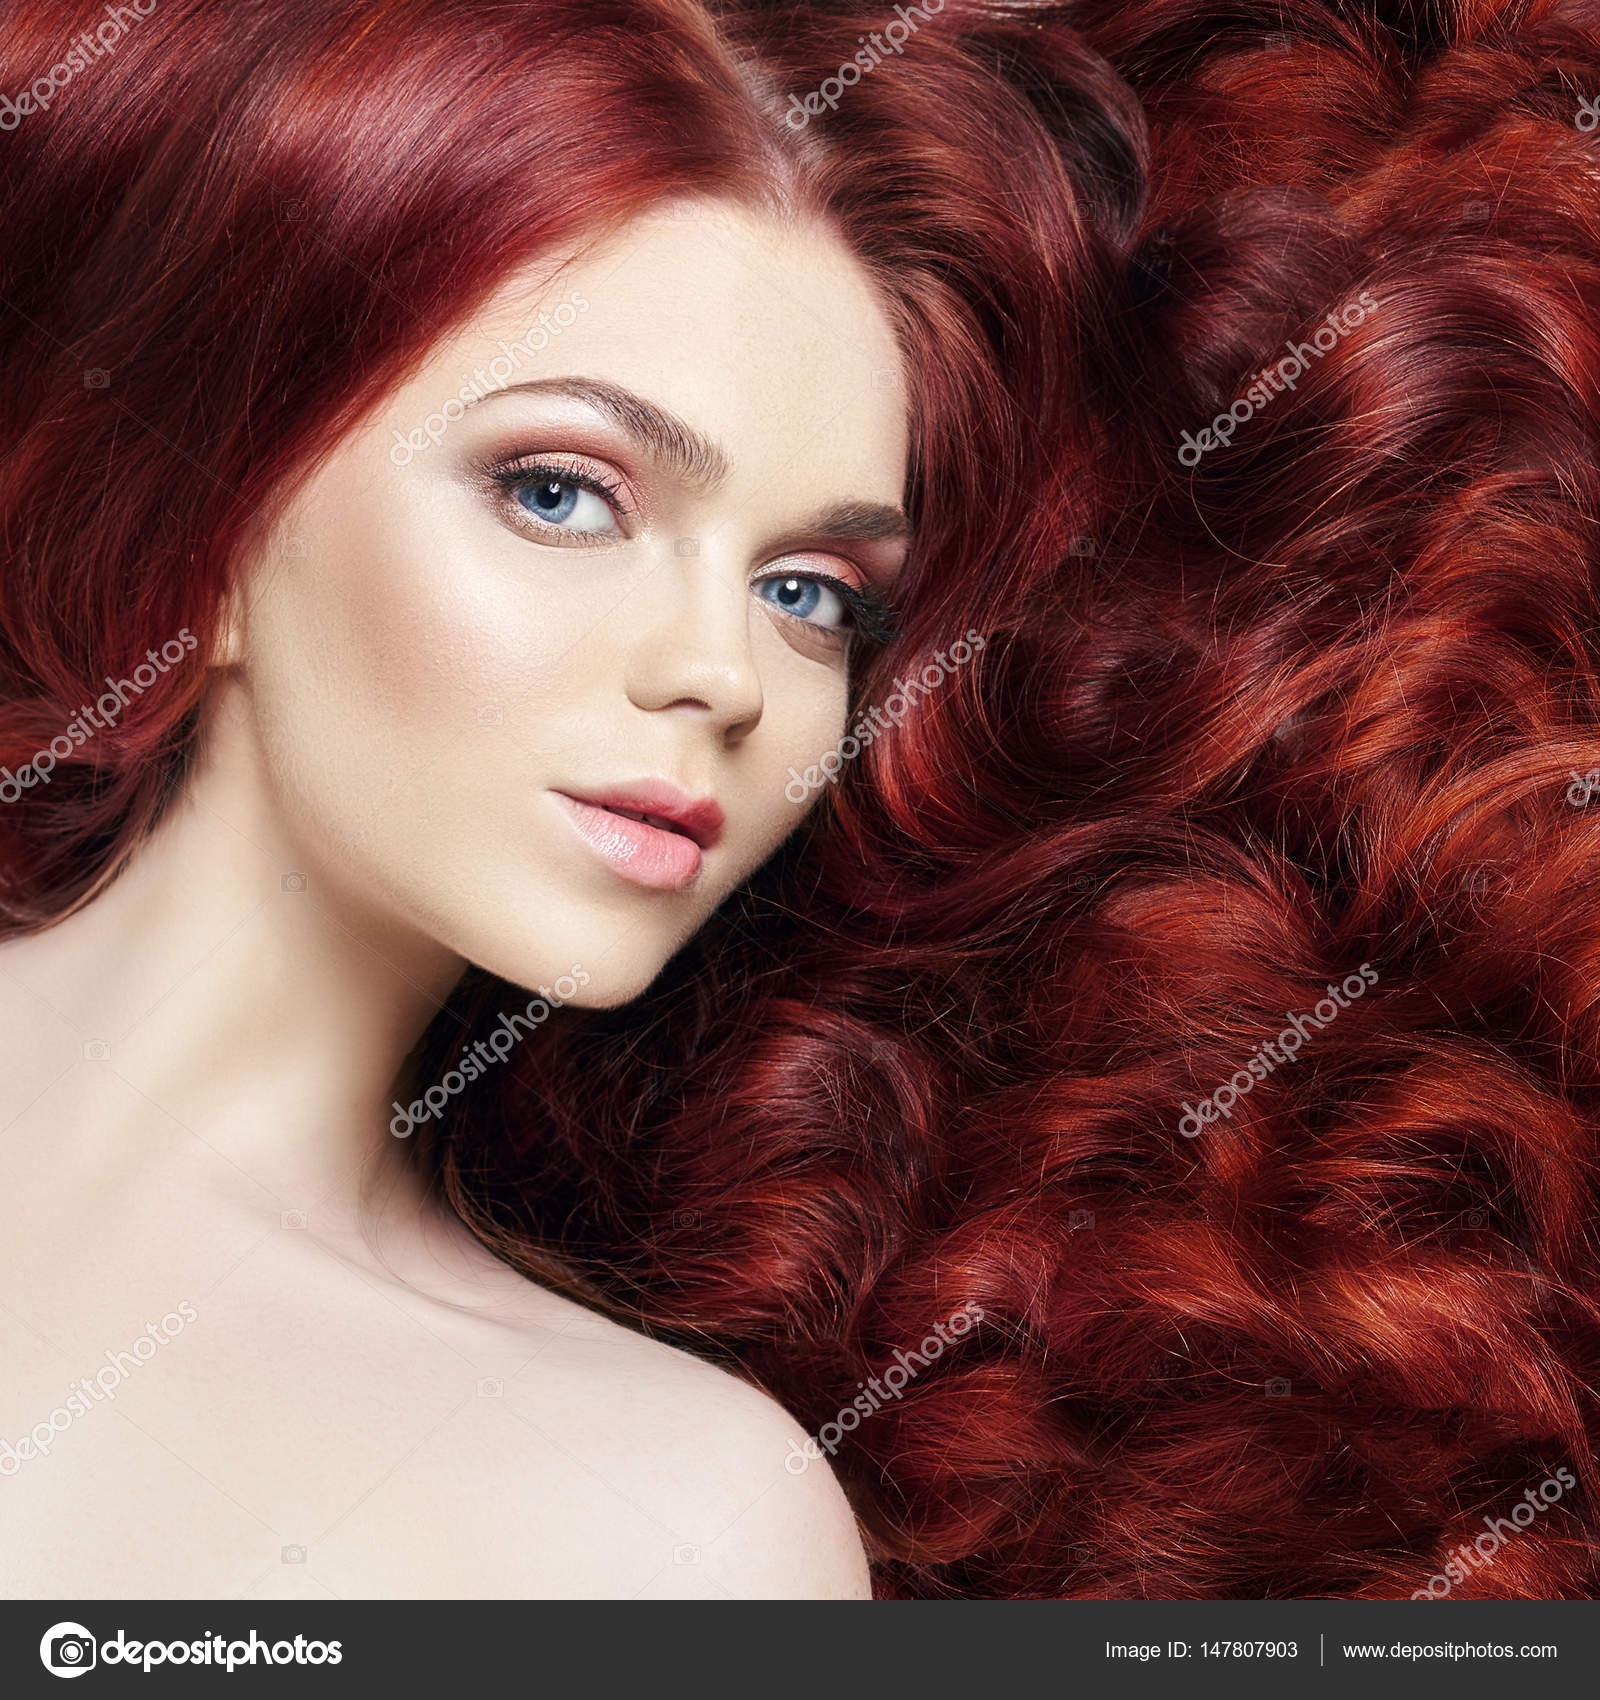 Girls with hair Nude dyed red